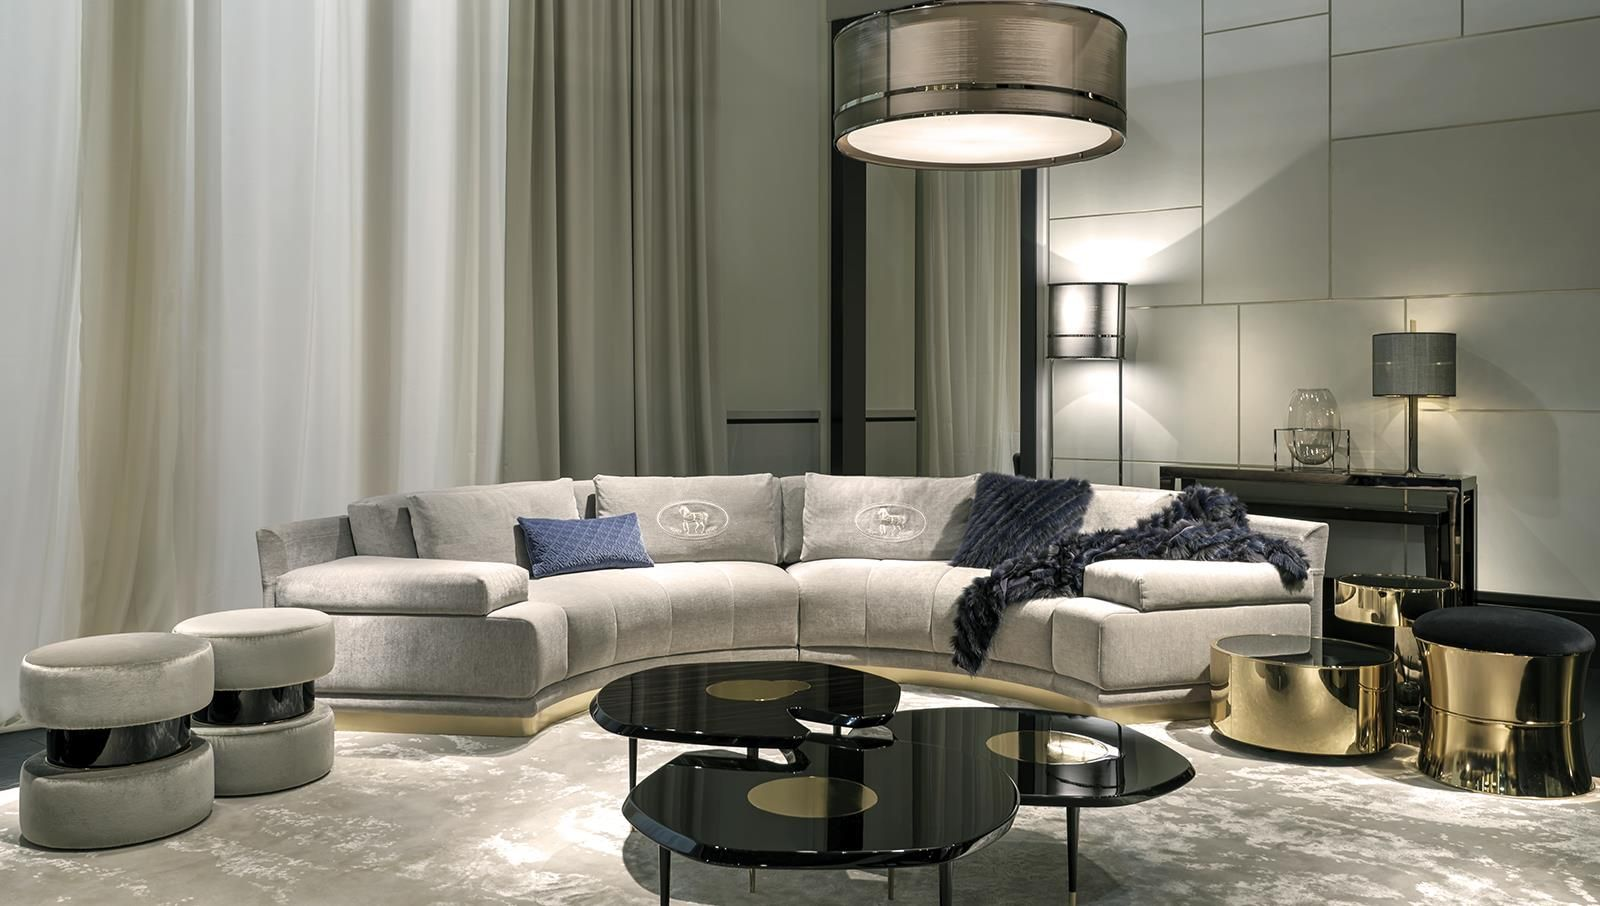 Fendi casa interior collections by luxury living group for Casa interior